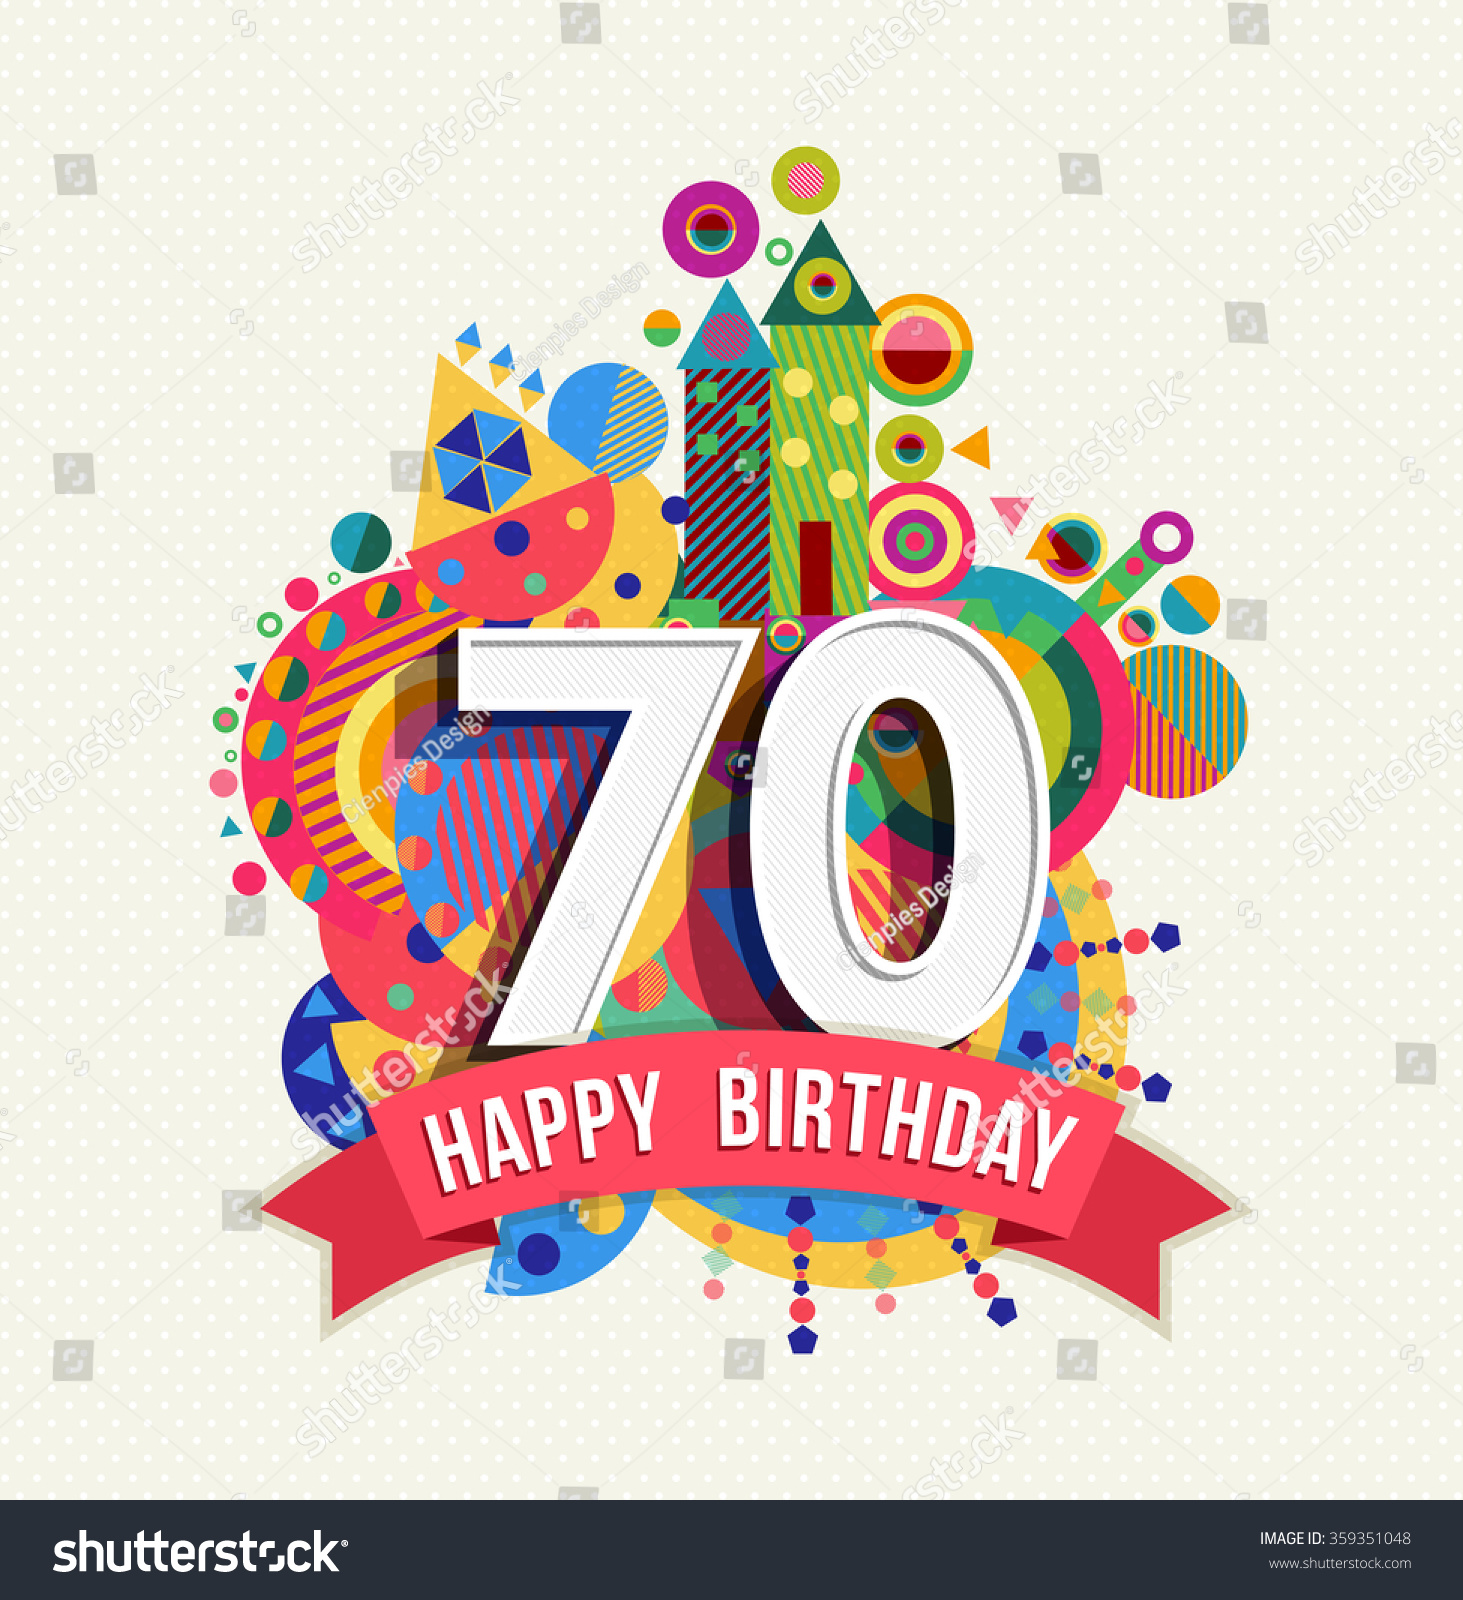 Happy Birthday Seventy 70 Year Fun Celebration Greeting Card With Number Text Label And Colorful